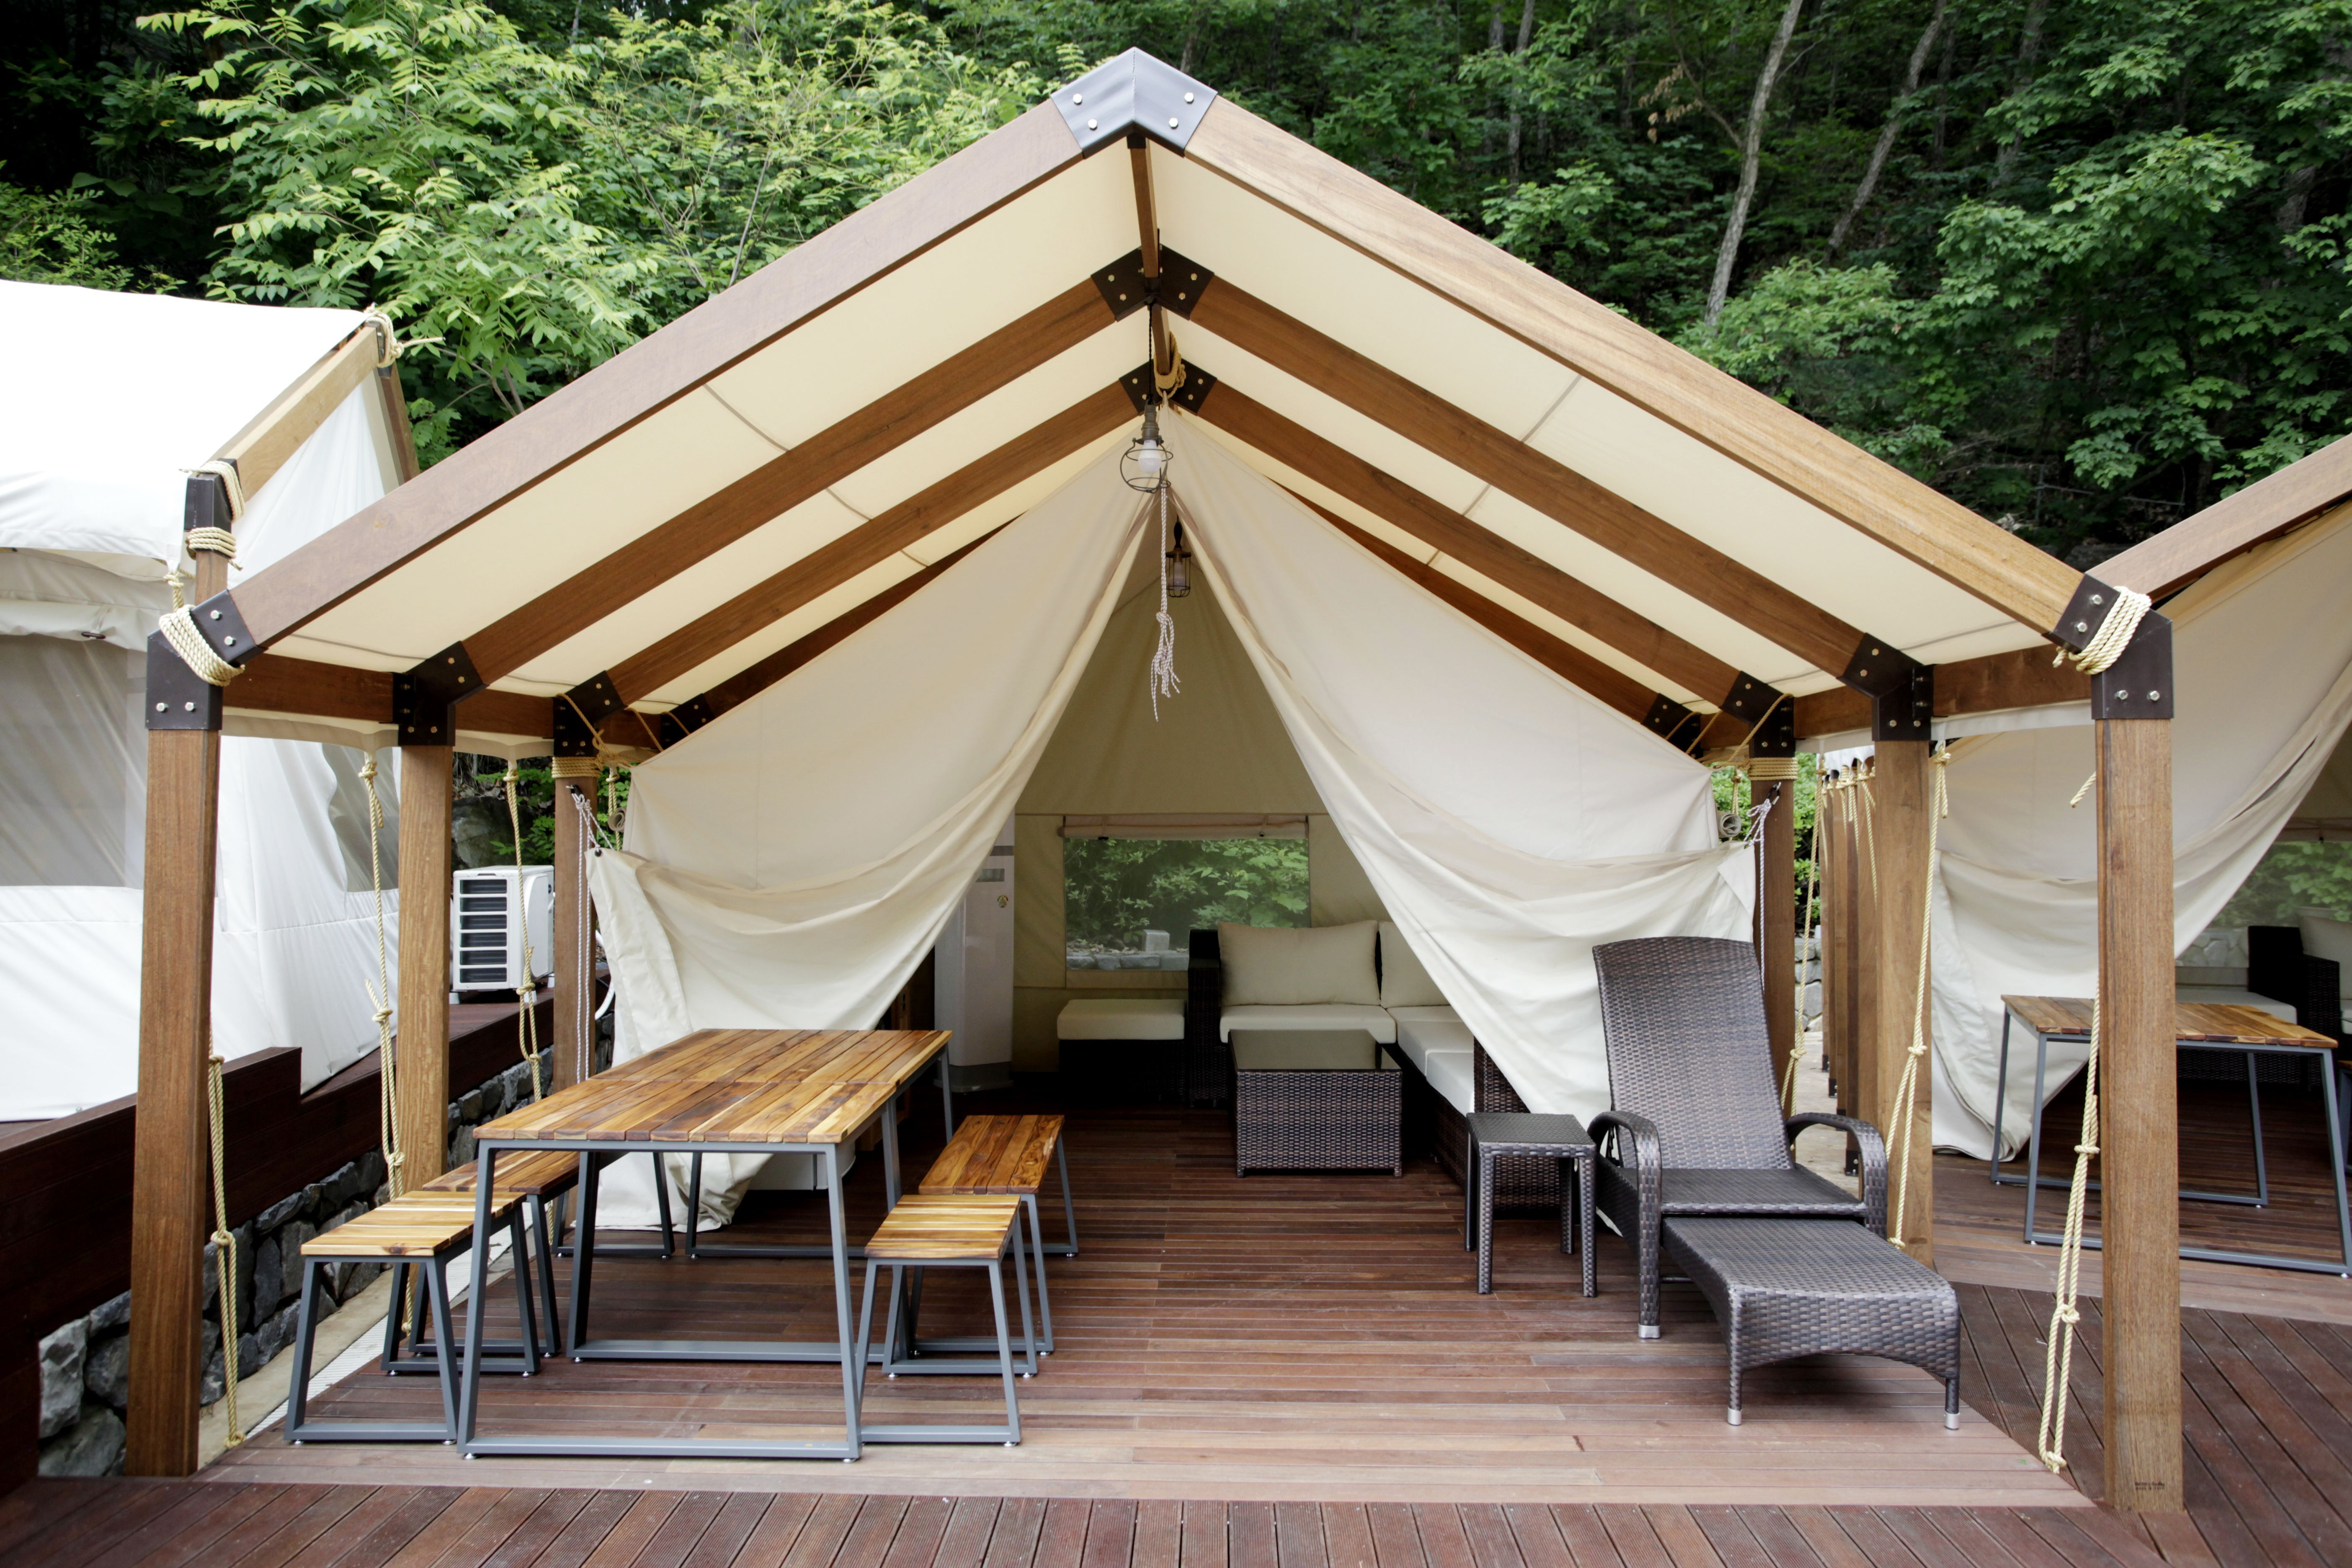 Ocean World Glamping Tent Tent Glamping Tent Living Luxury Camping